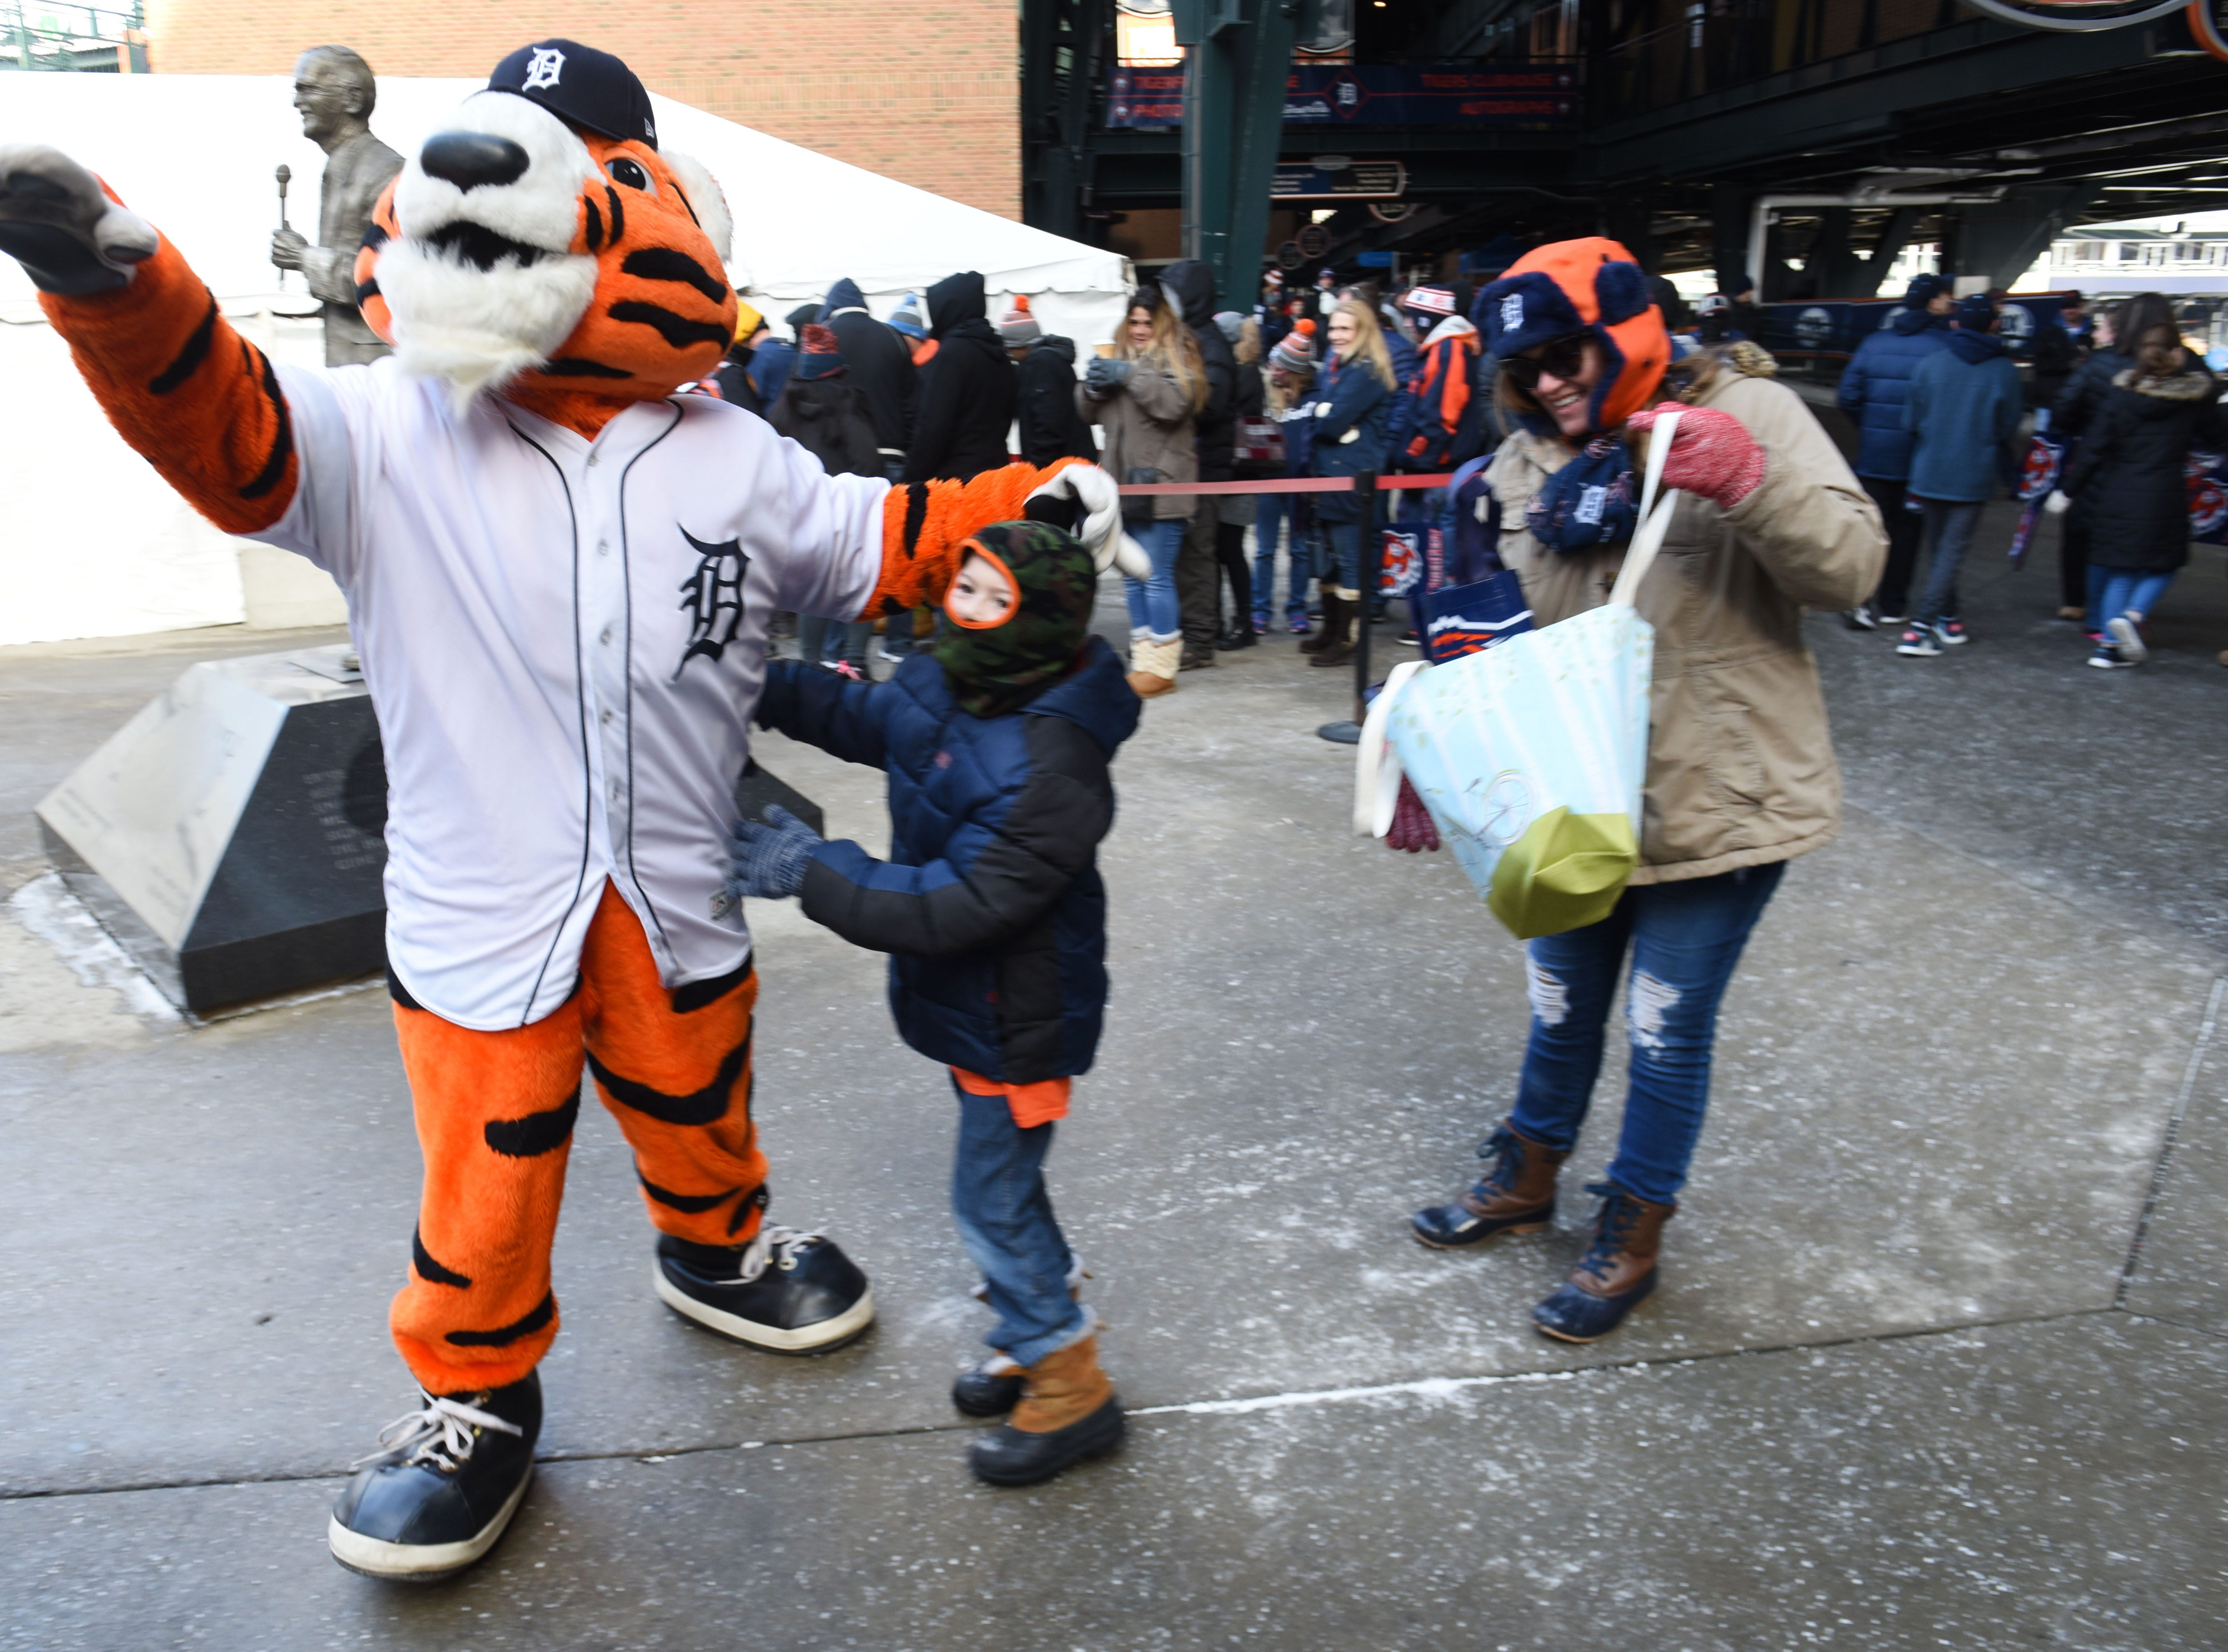 Detroit Tigers mascot Paws has fun with fans at TigerFest on Saturday, January 26, 2019.